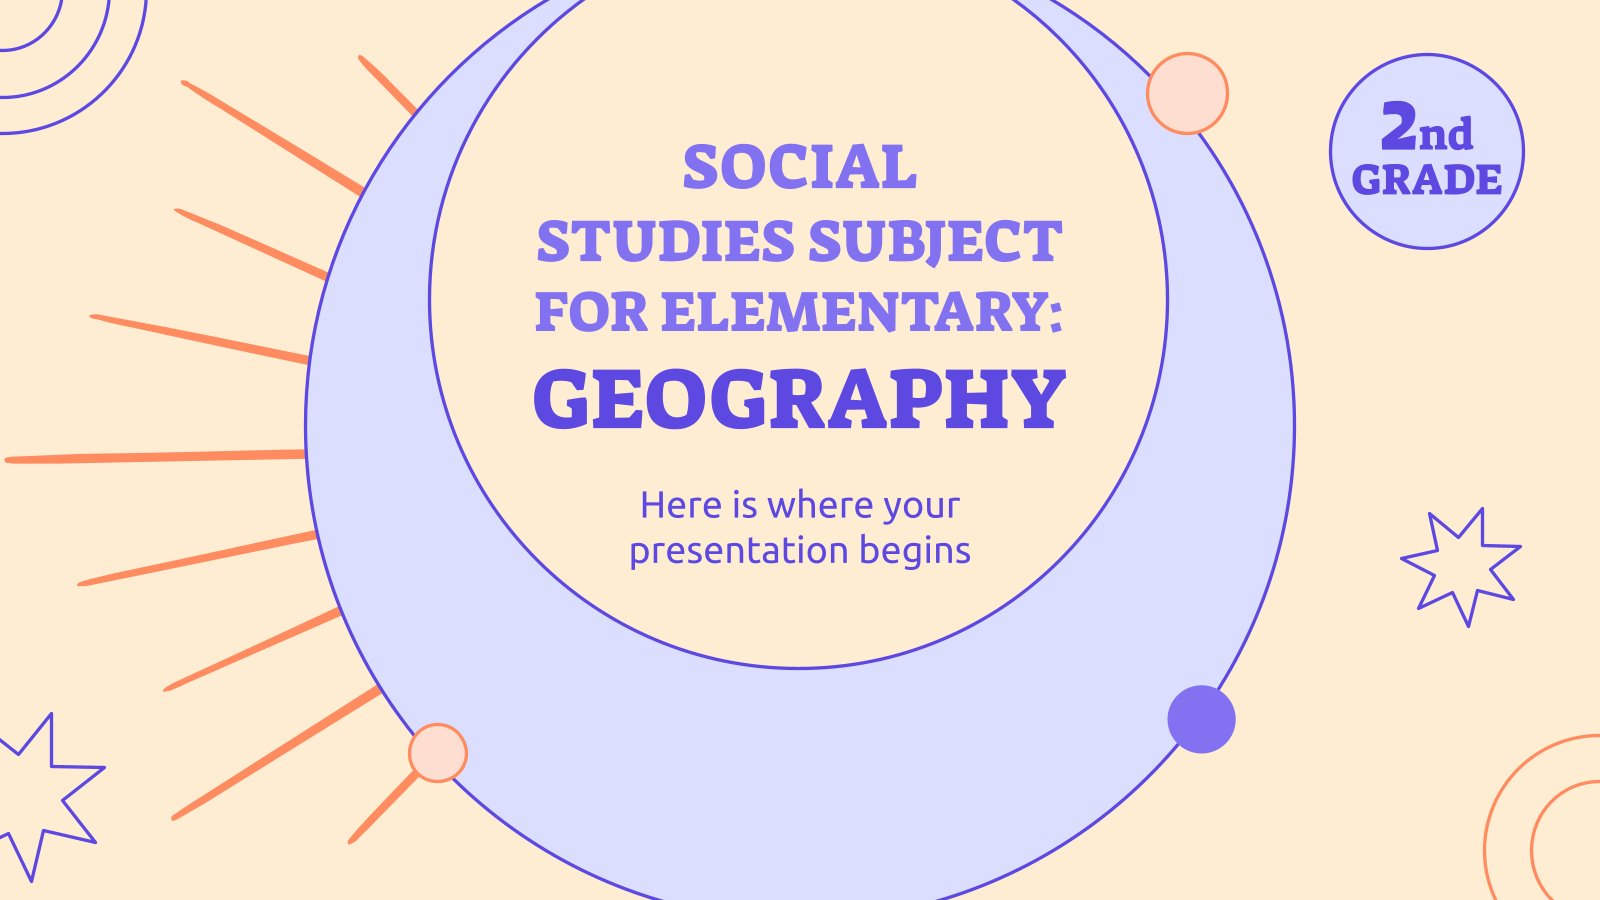 Social Studies Subject for Elementary - 2nd Grade: Geography presentation template